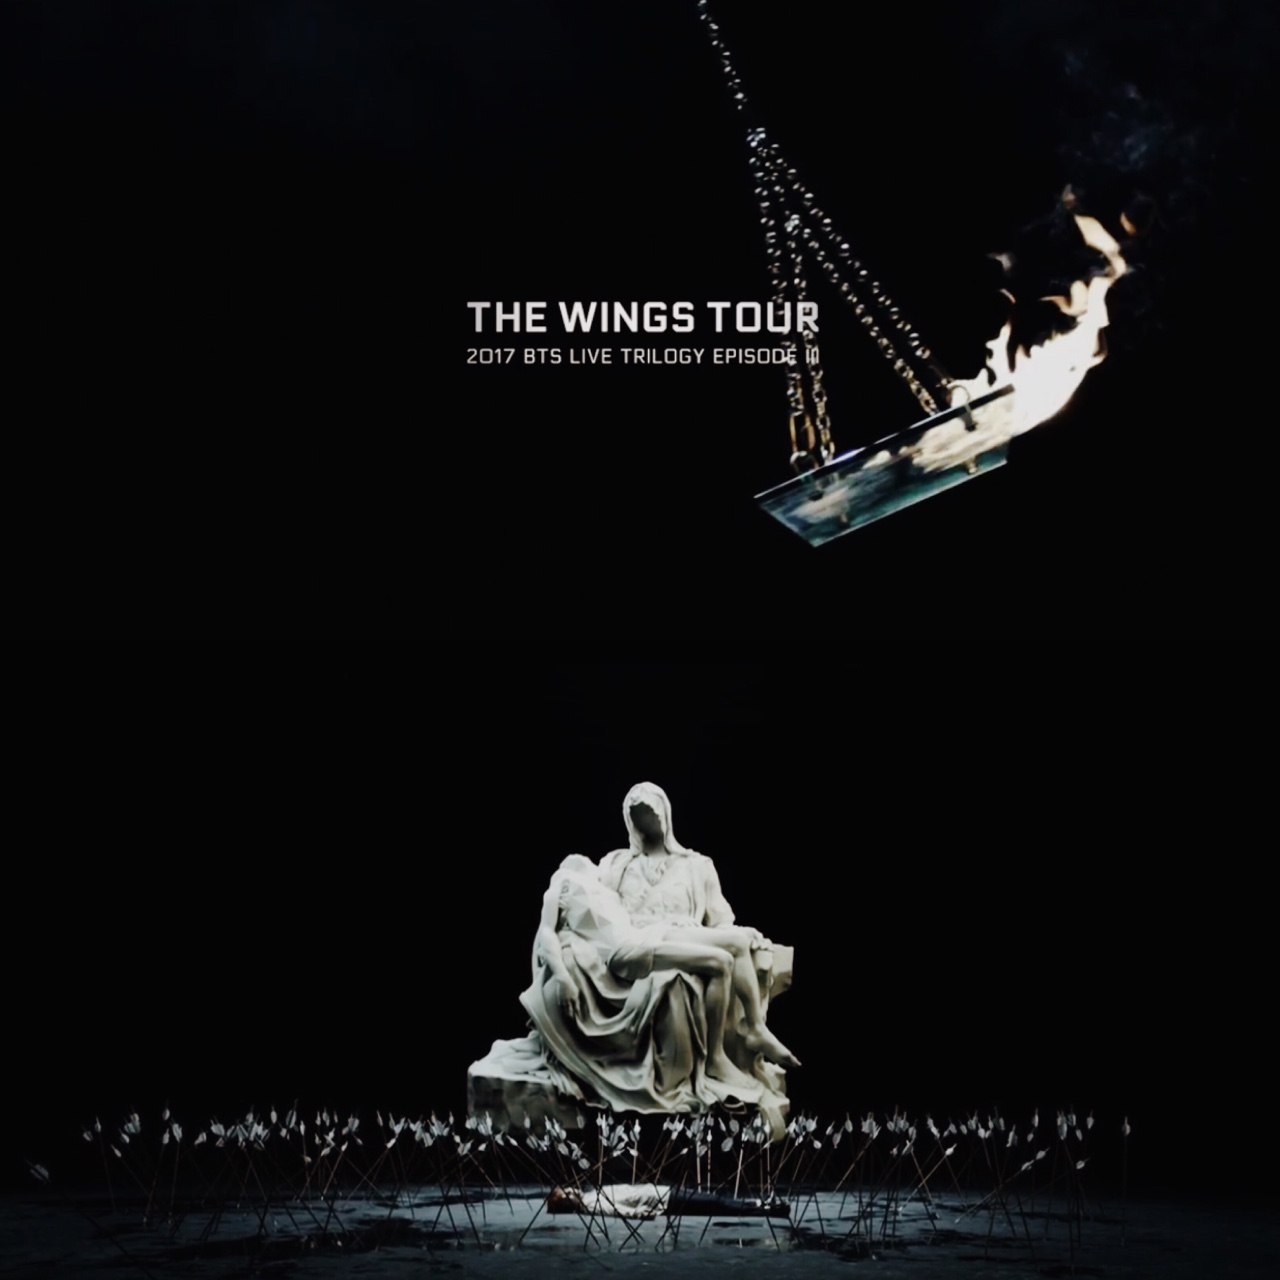 Bts Images The Wings Tour Trailer Hd Wallpaper And Background Photos